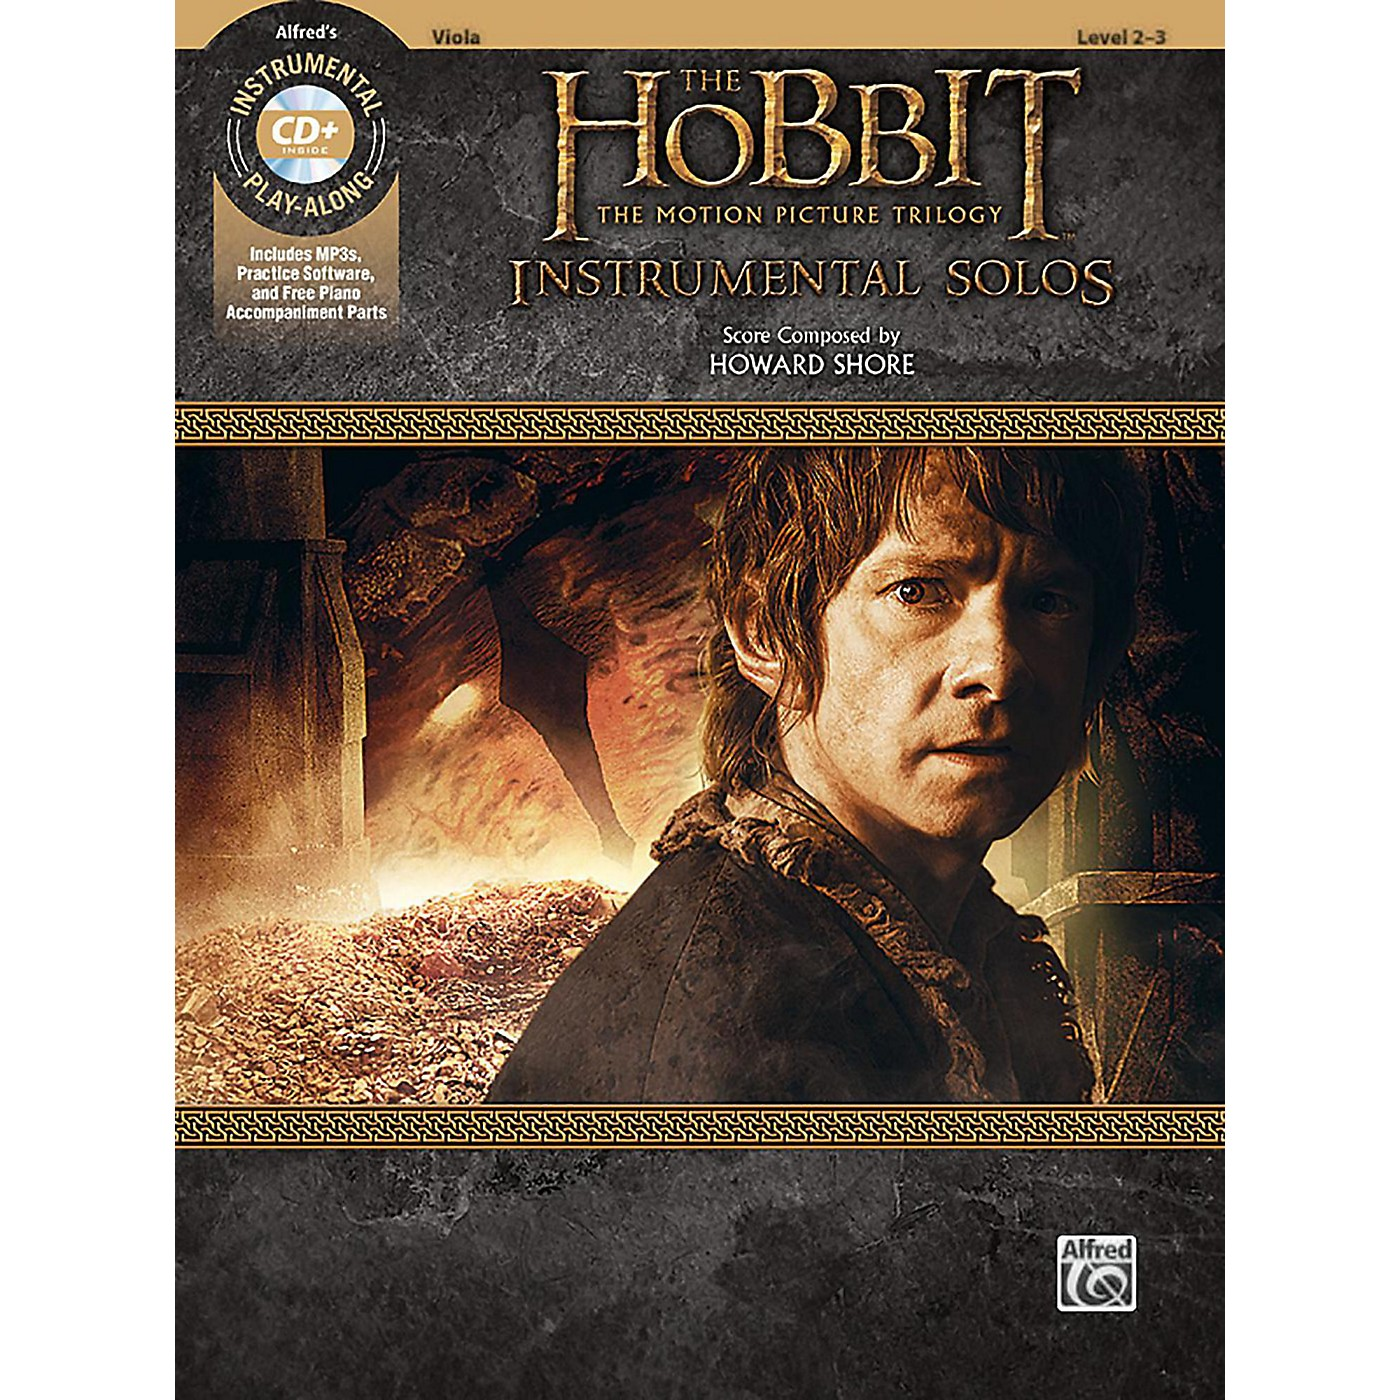 Alfred The Hobbit - The Motion Picture Trilogy Instrumental Solos for Strings Viola Book & CD Level 2-3 Songbook thumbnail